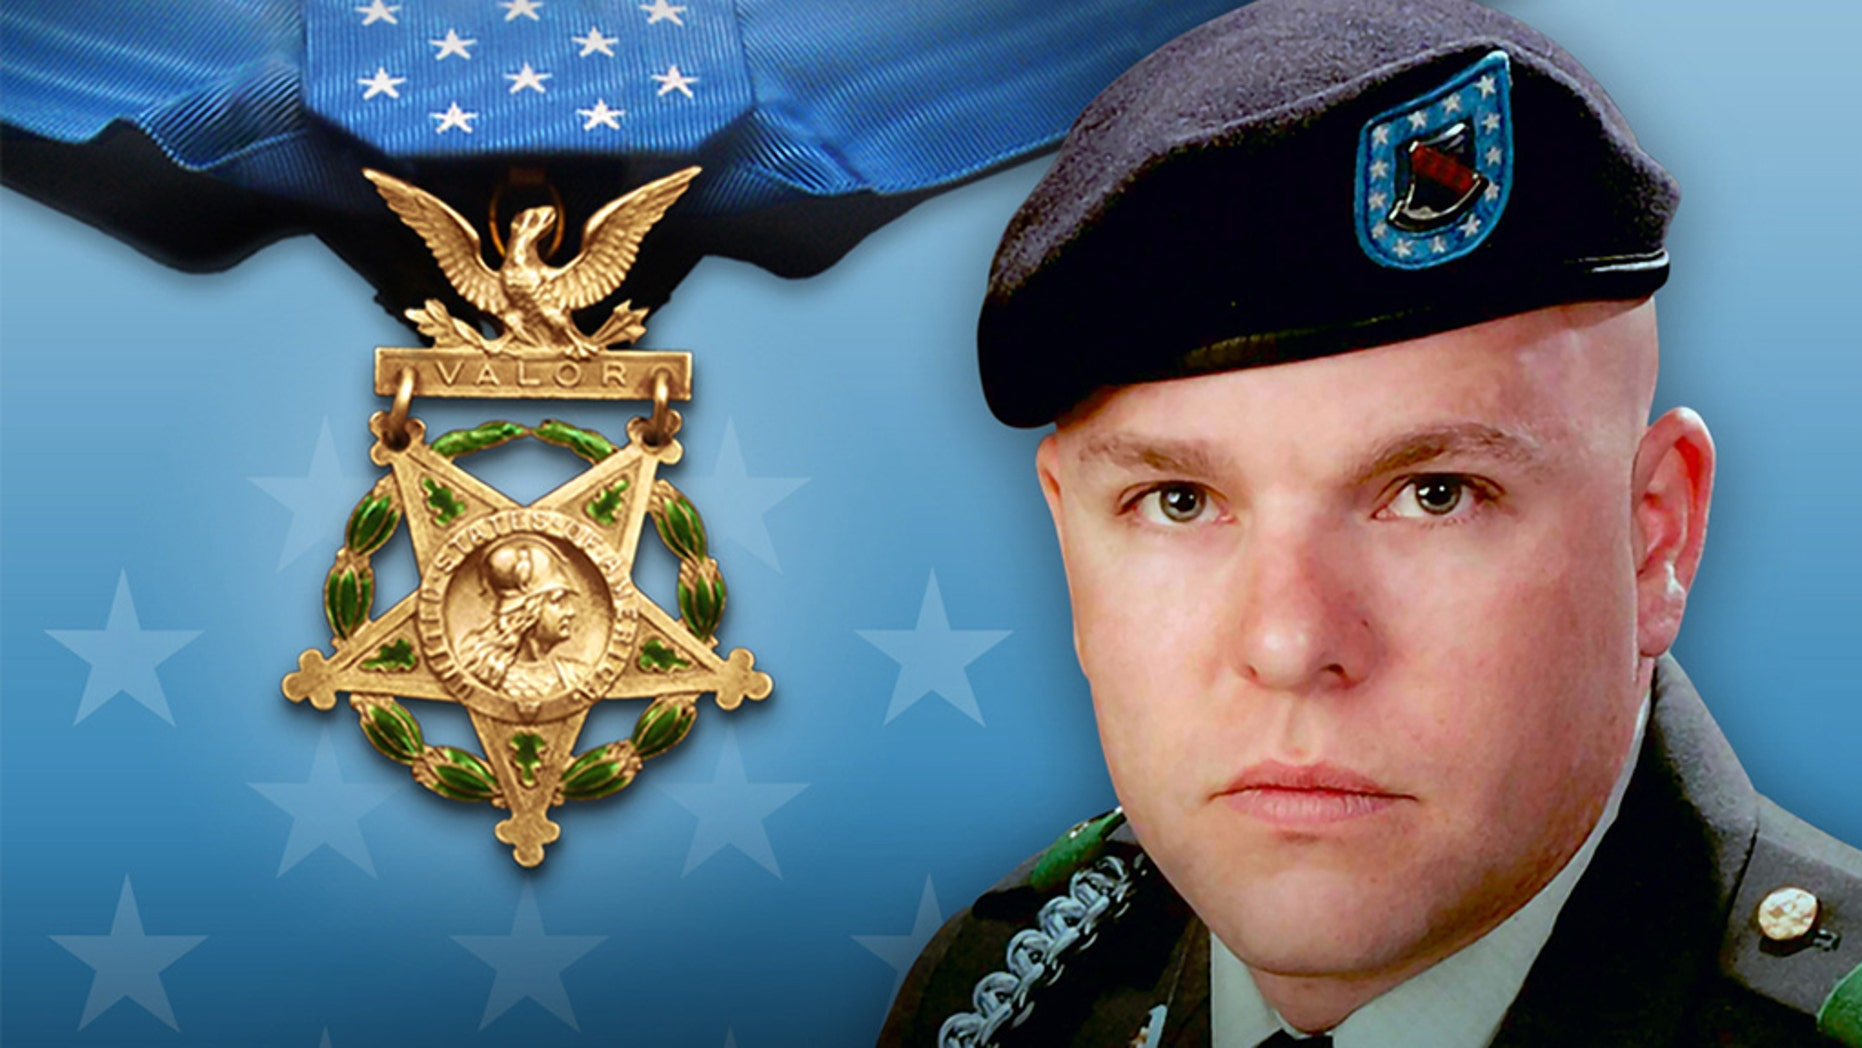 Staff Sgt. Travis W. Atkins will be posthumously awarded the Medal of Honor for his heroic actions on June 1, 2007, while his unit -- Delta Company, 2nd Battalion, 14th Infantry Regiment, 2nd Brigade Combat Team -- conducted route clearance southwest of Baghdad. (U.S. Army)